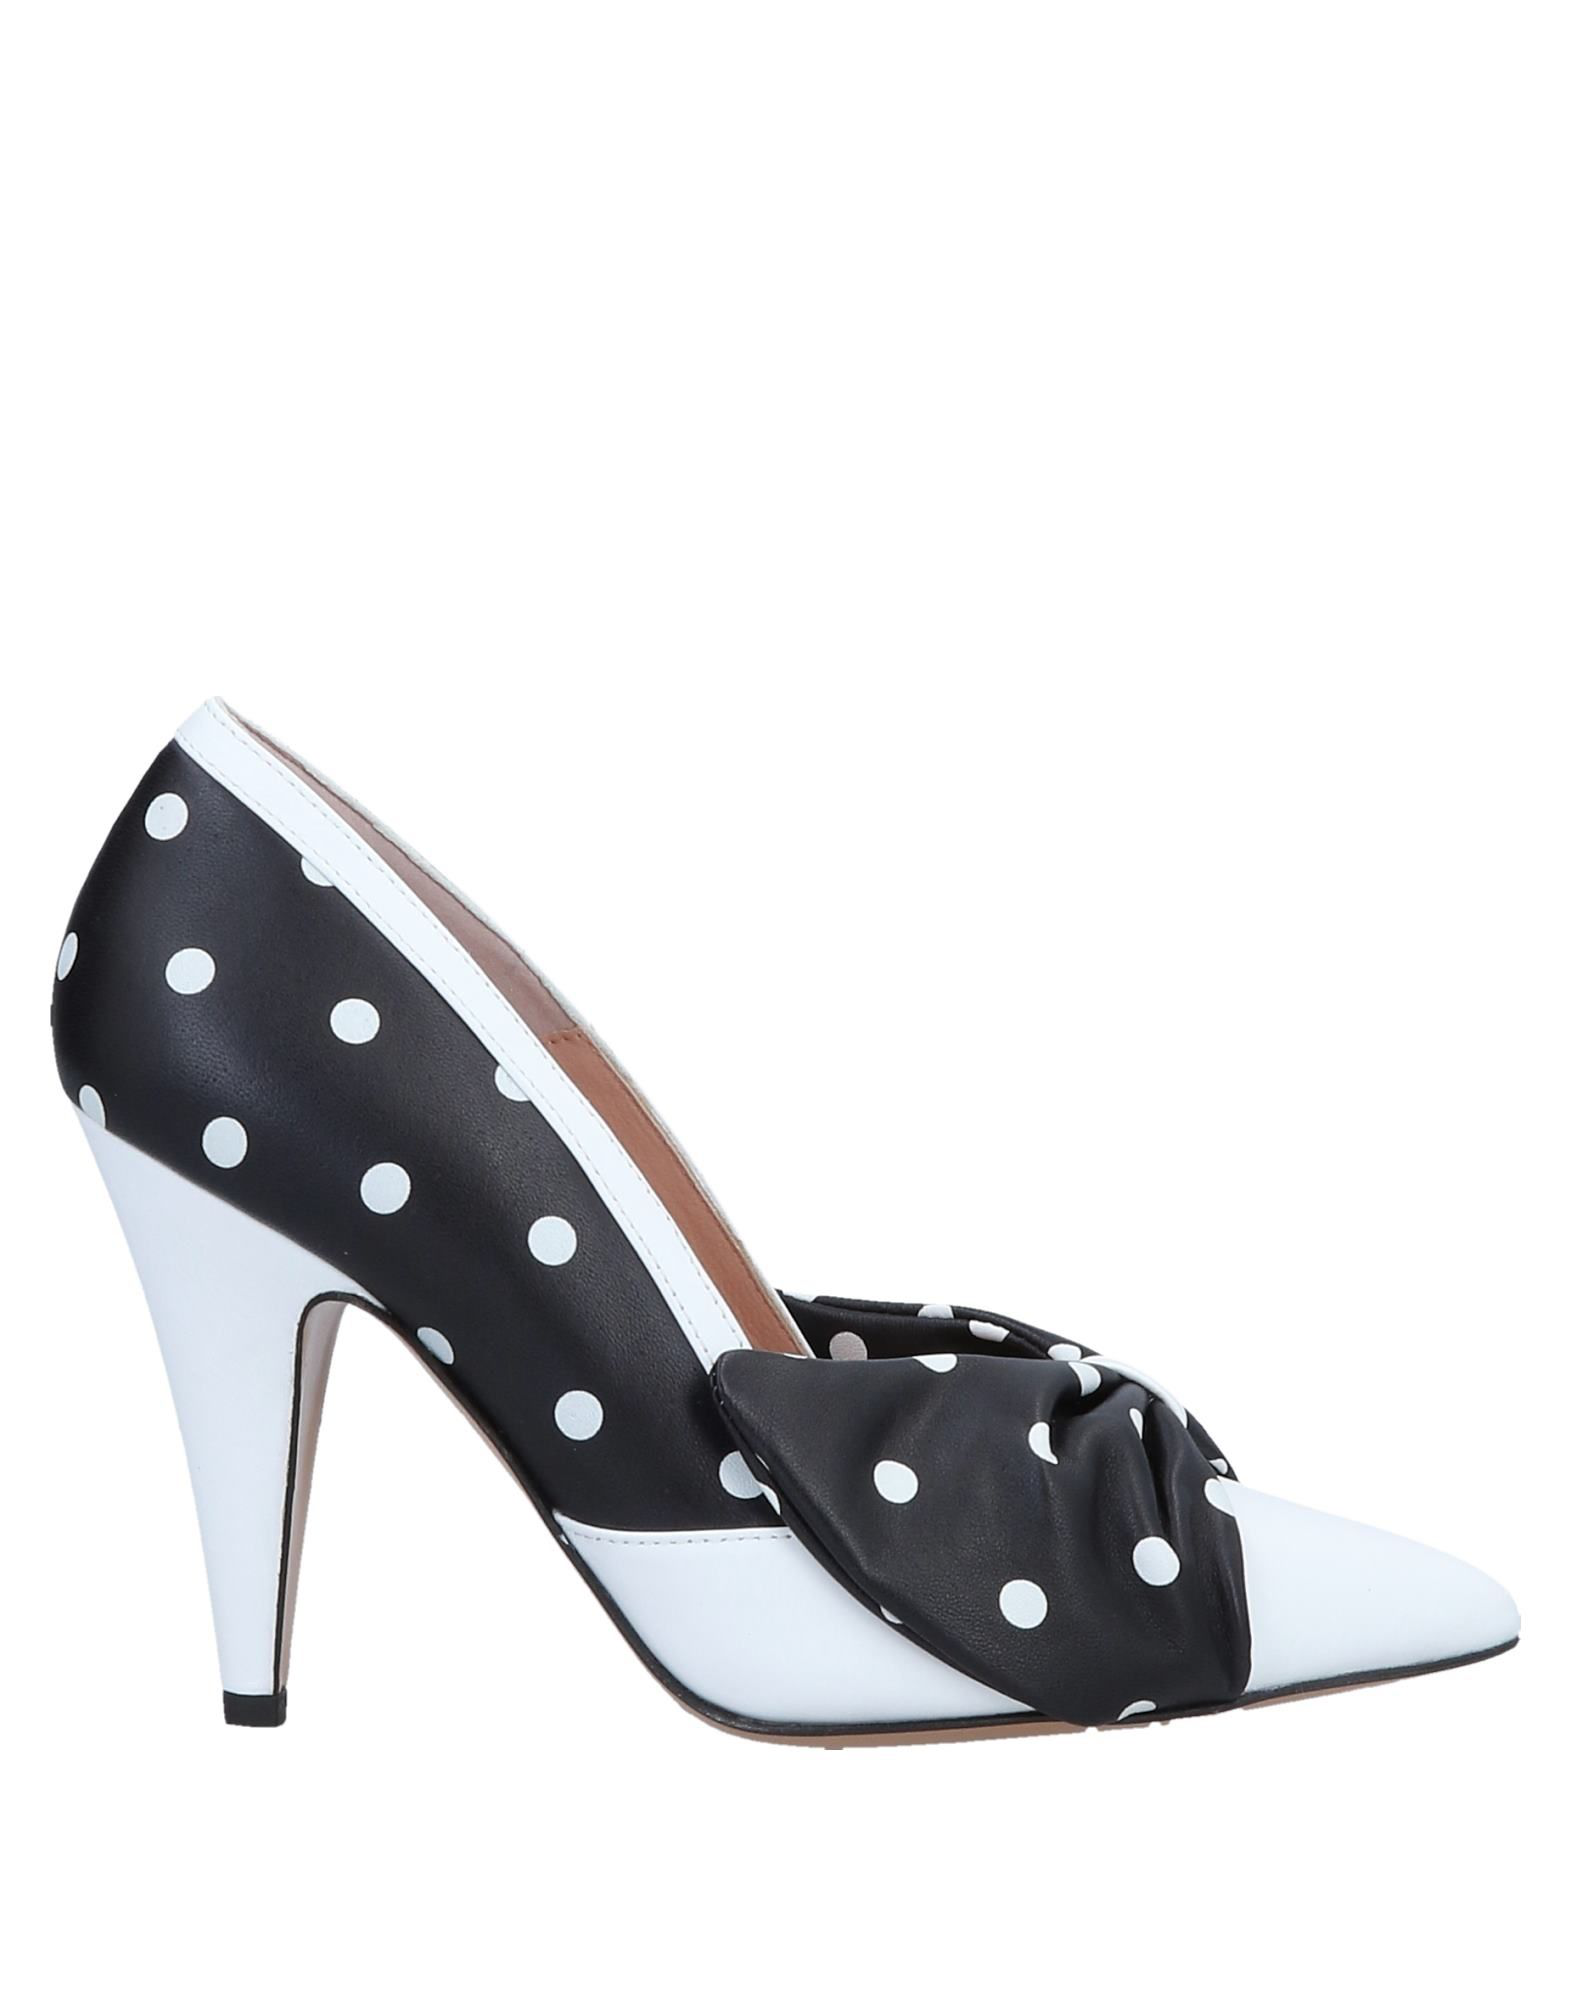 Boutique Moschino Pump In Black